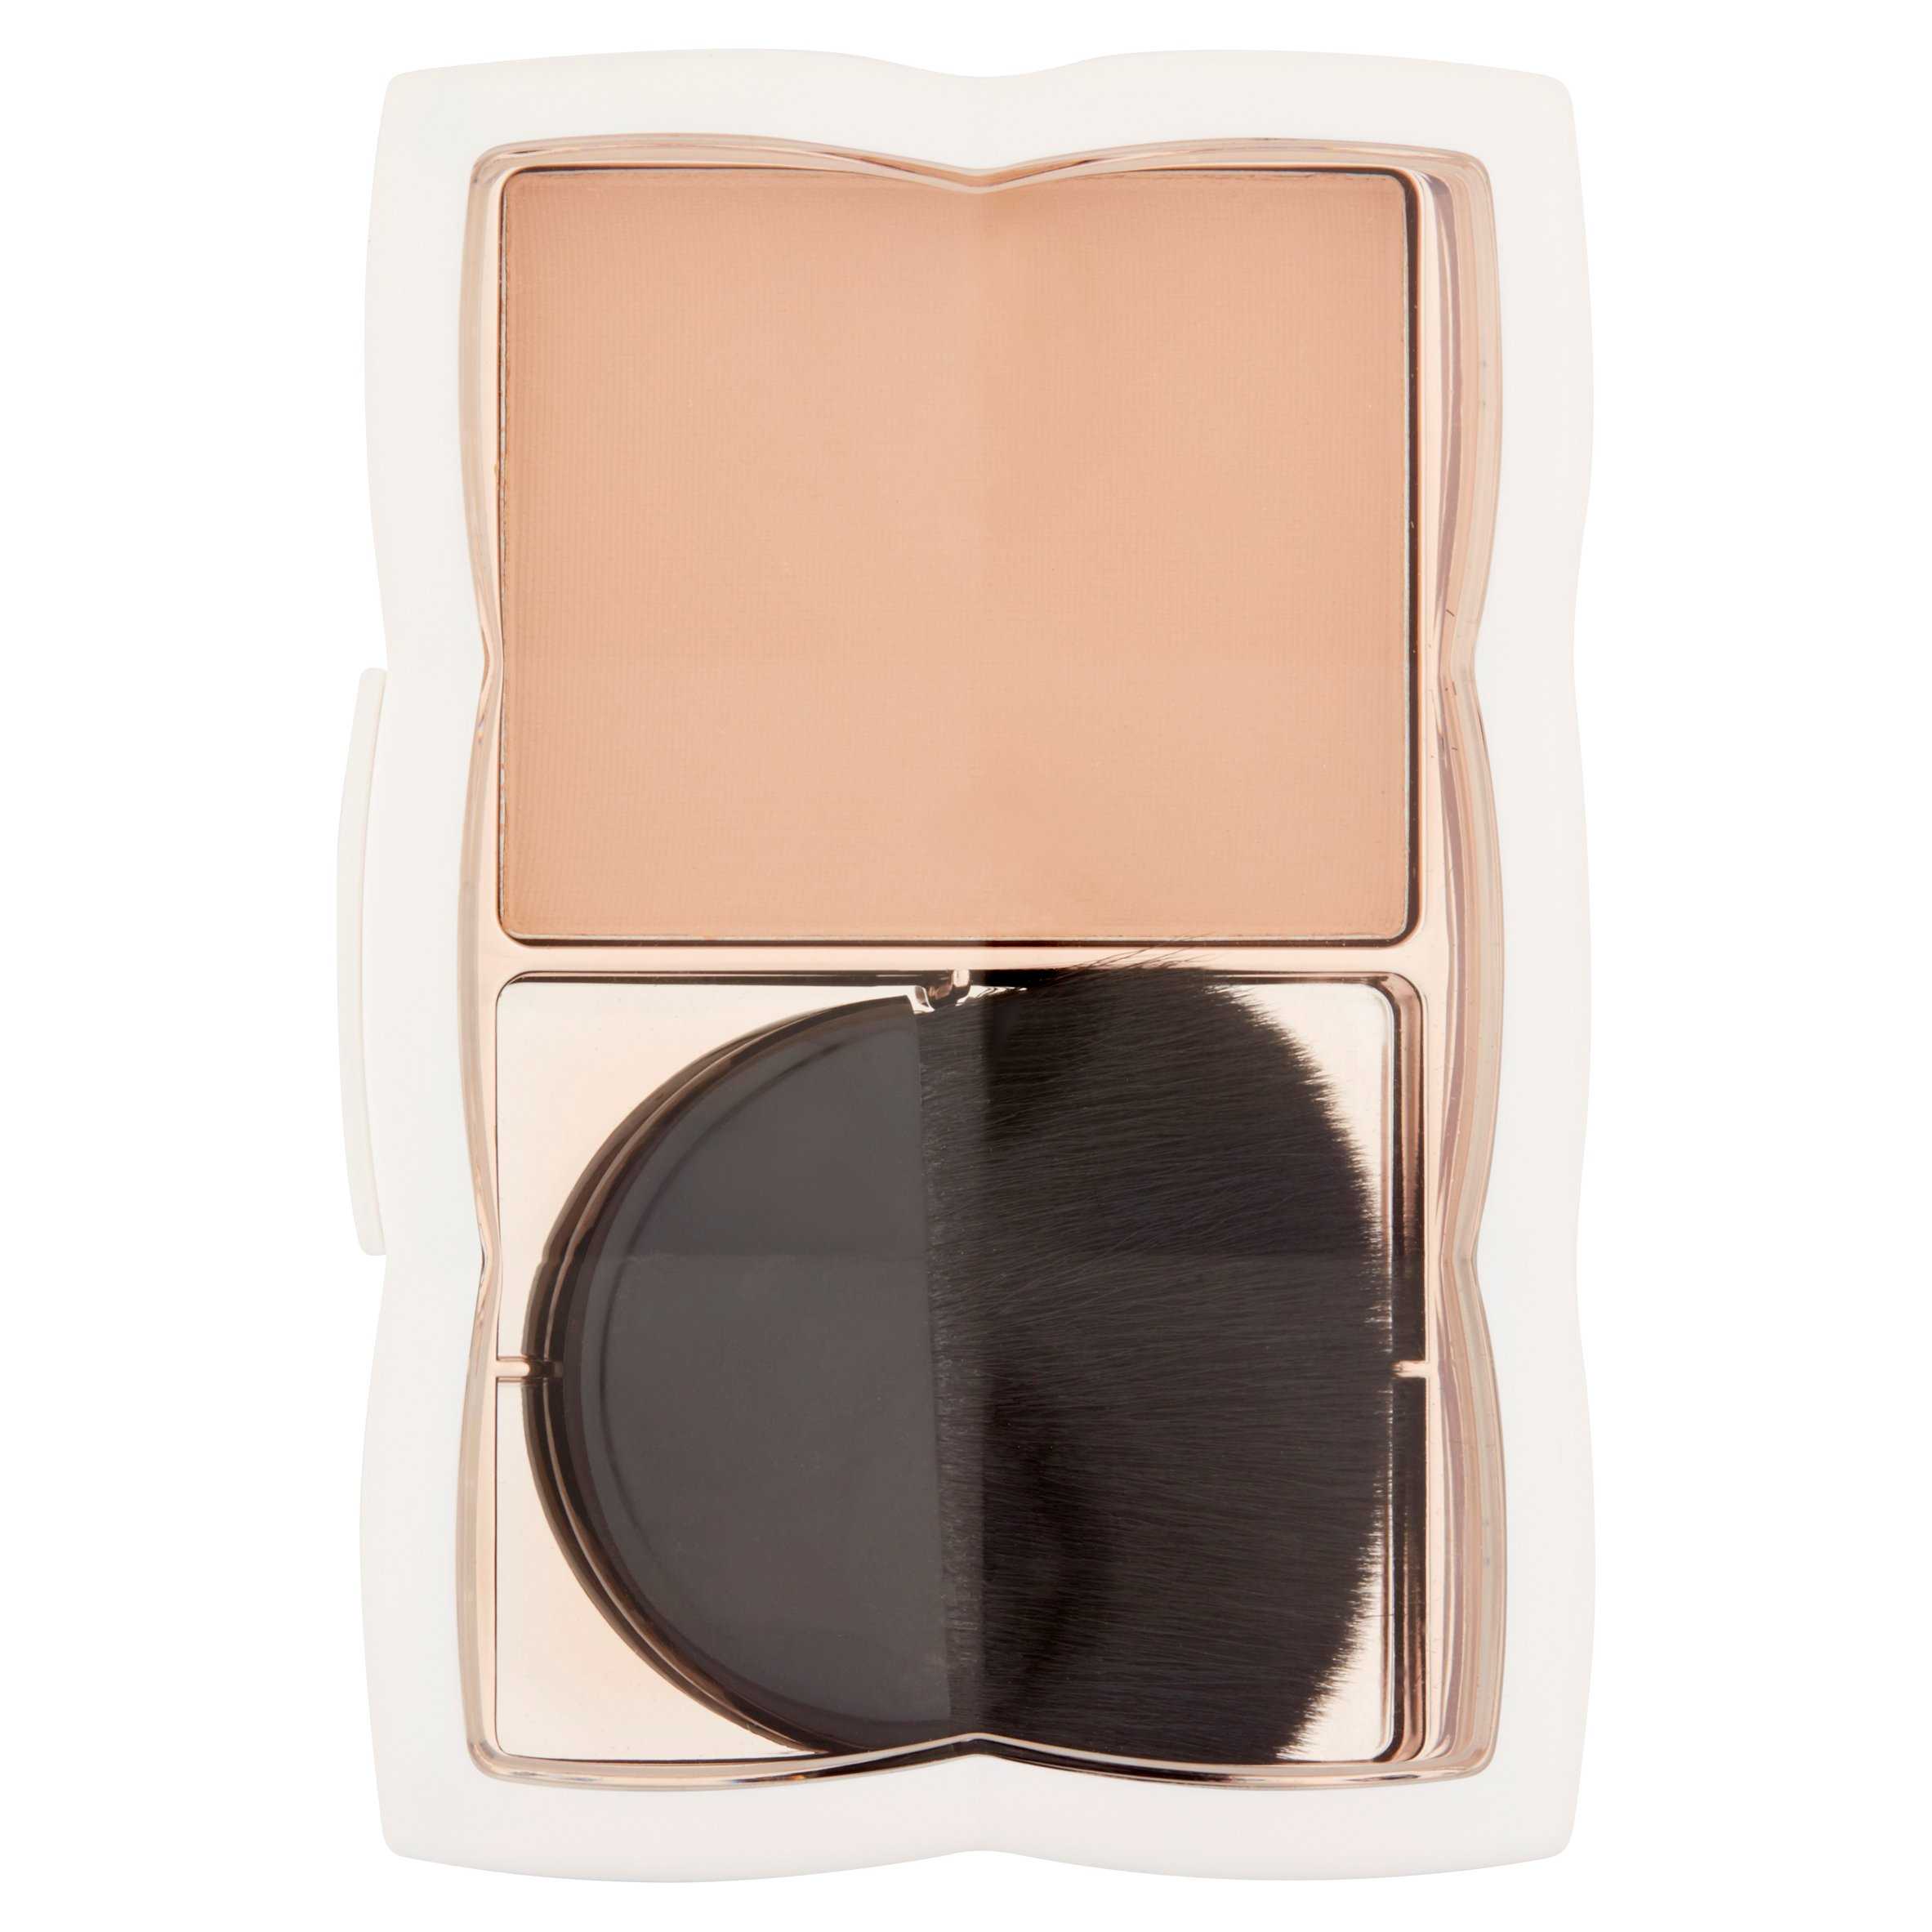 Powder Powder Trip PP4 Foundation, .12 oz